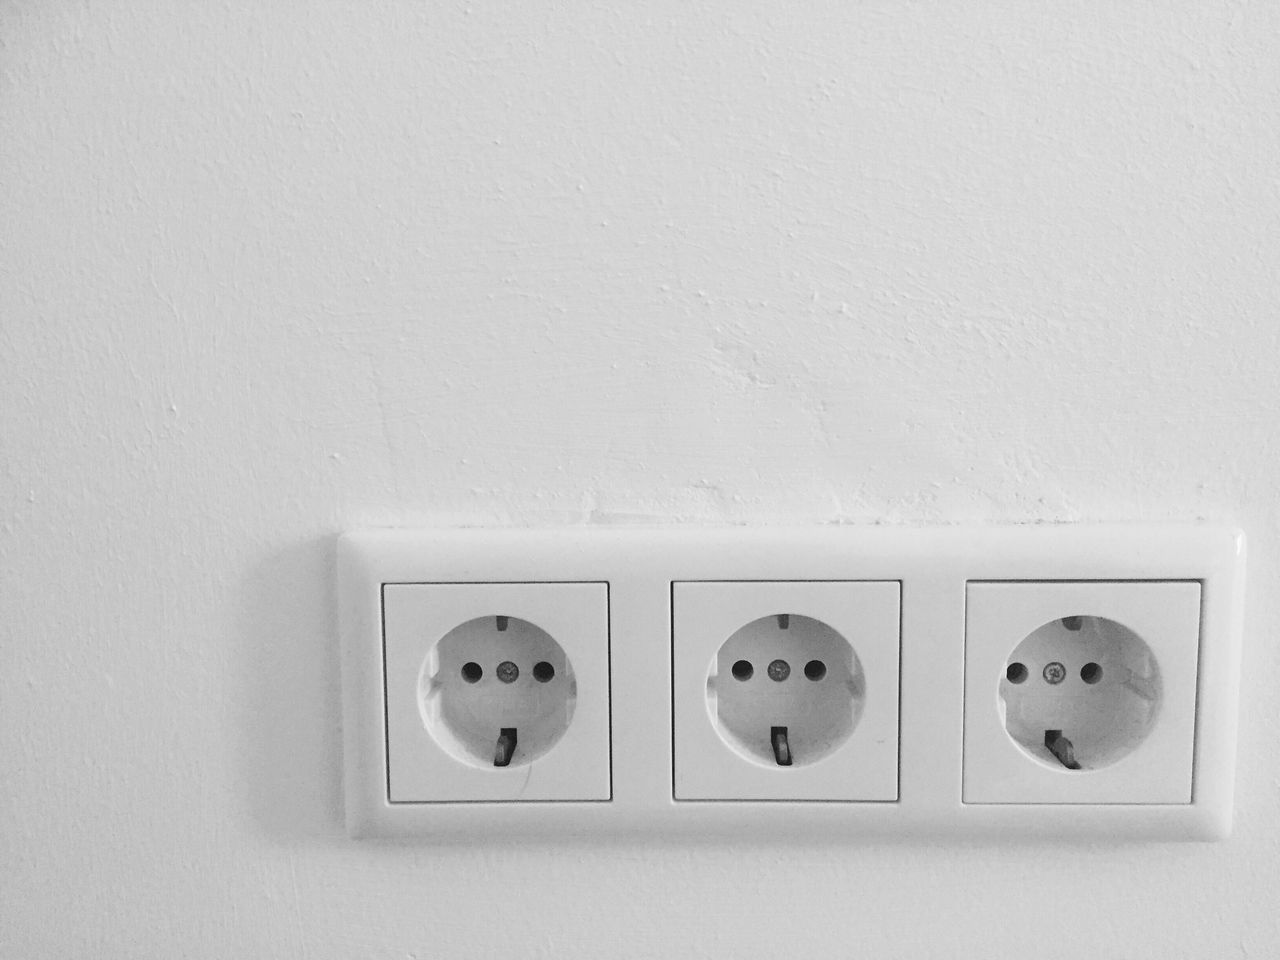 EyeEm Selects Indoors  Electricity  Technology Architecture White Long Exposure Fantasy Socket Outlet Art EyeEm Best Shots Living Three Wall Clean Technology Photography Light Shadow EyeEm Selects